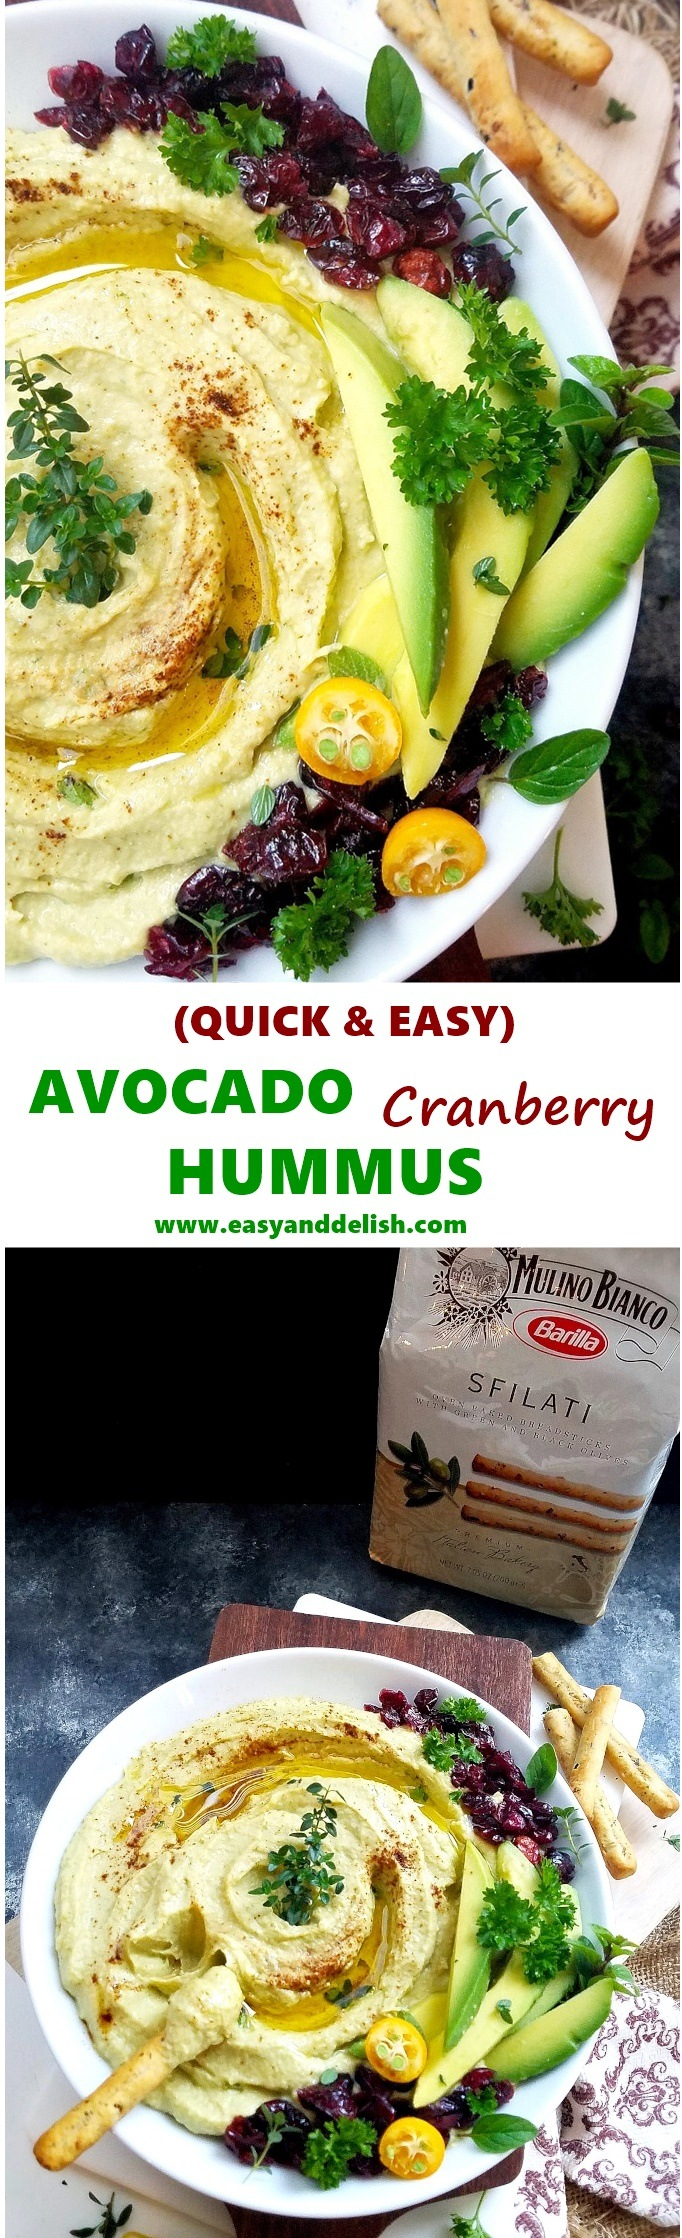 2 collage images with close up of the avocado hummus